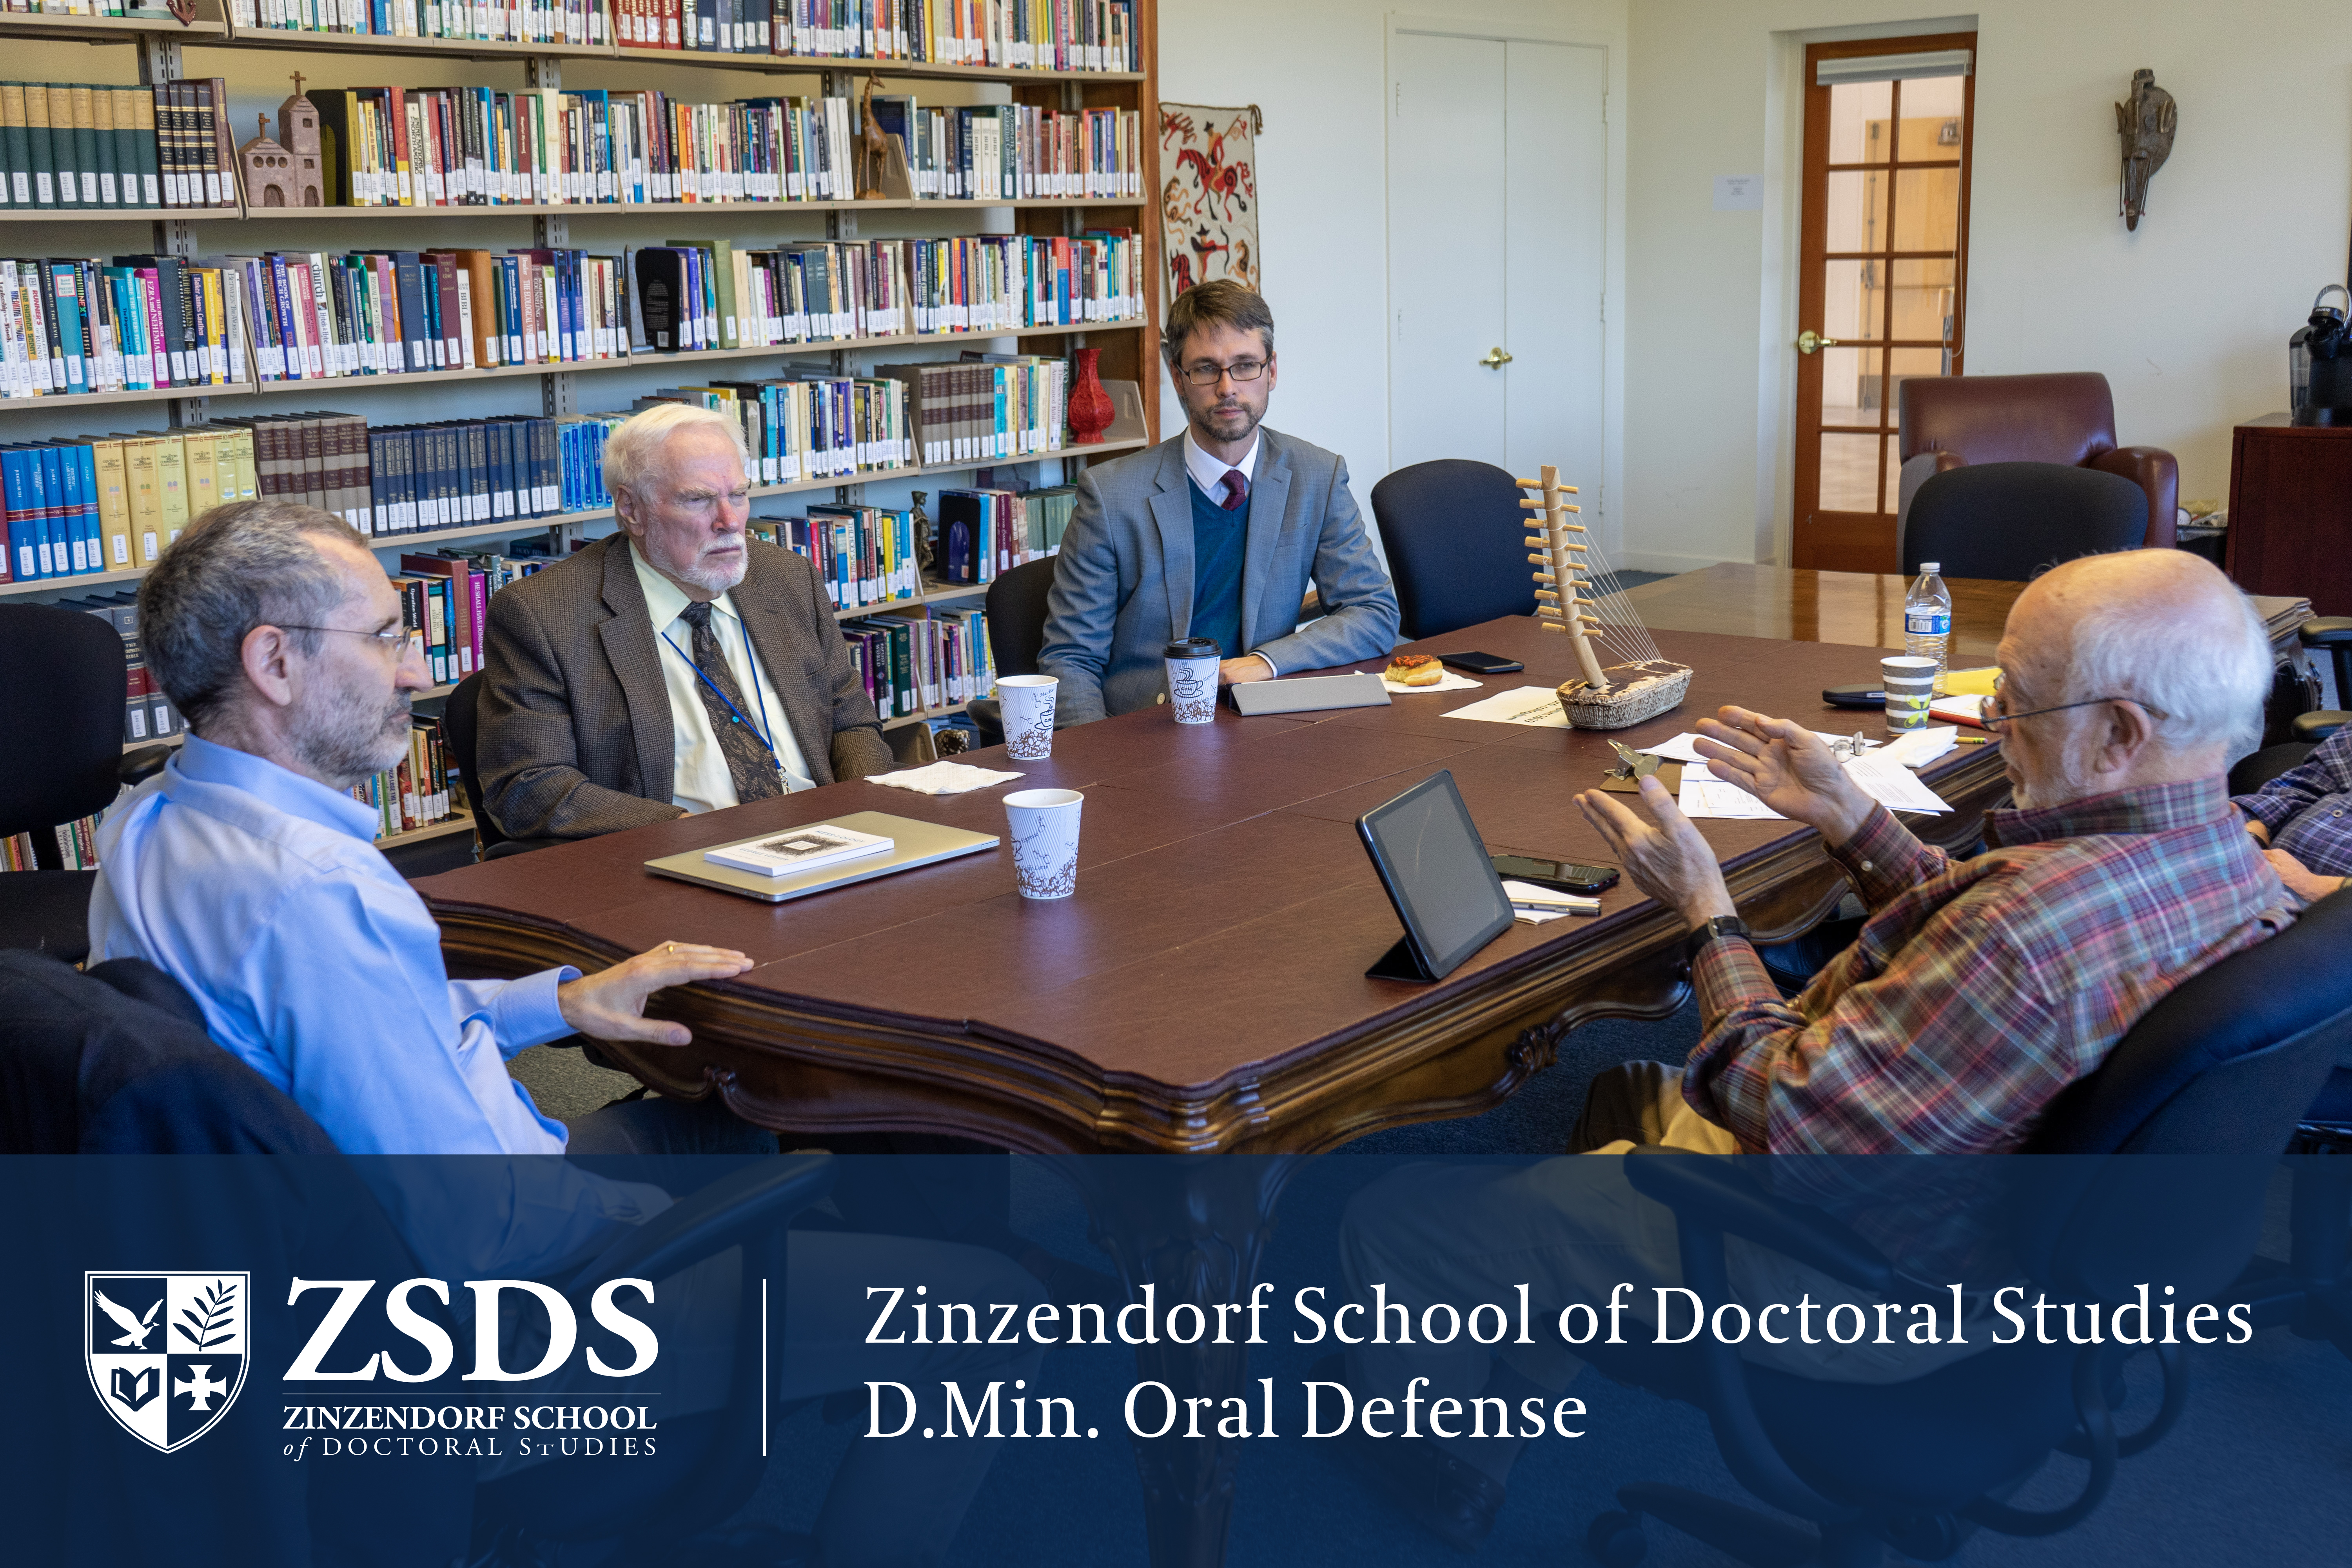 olivet-university-two-d.-min-candidates-successfully-passed-oral-defenses